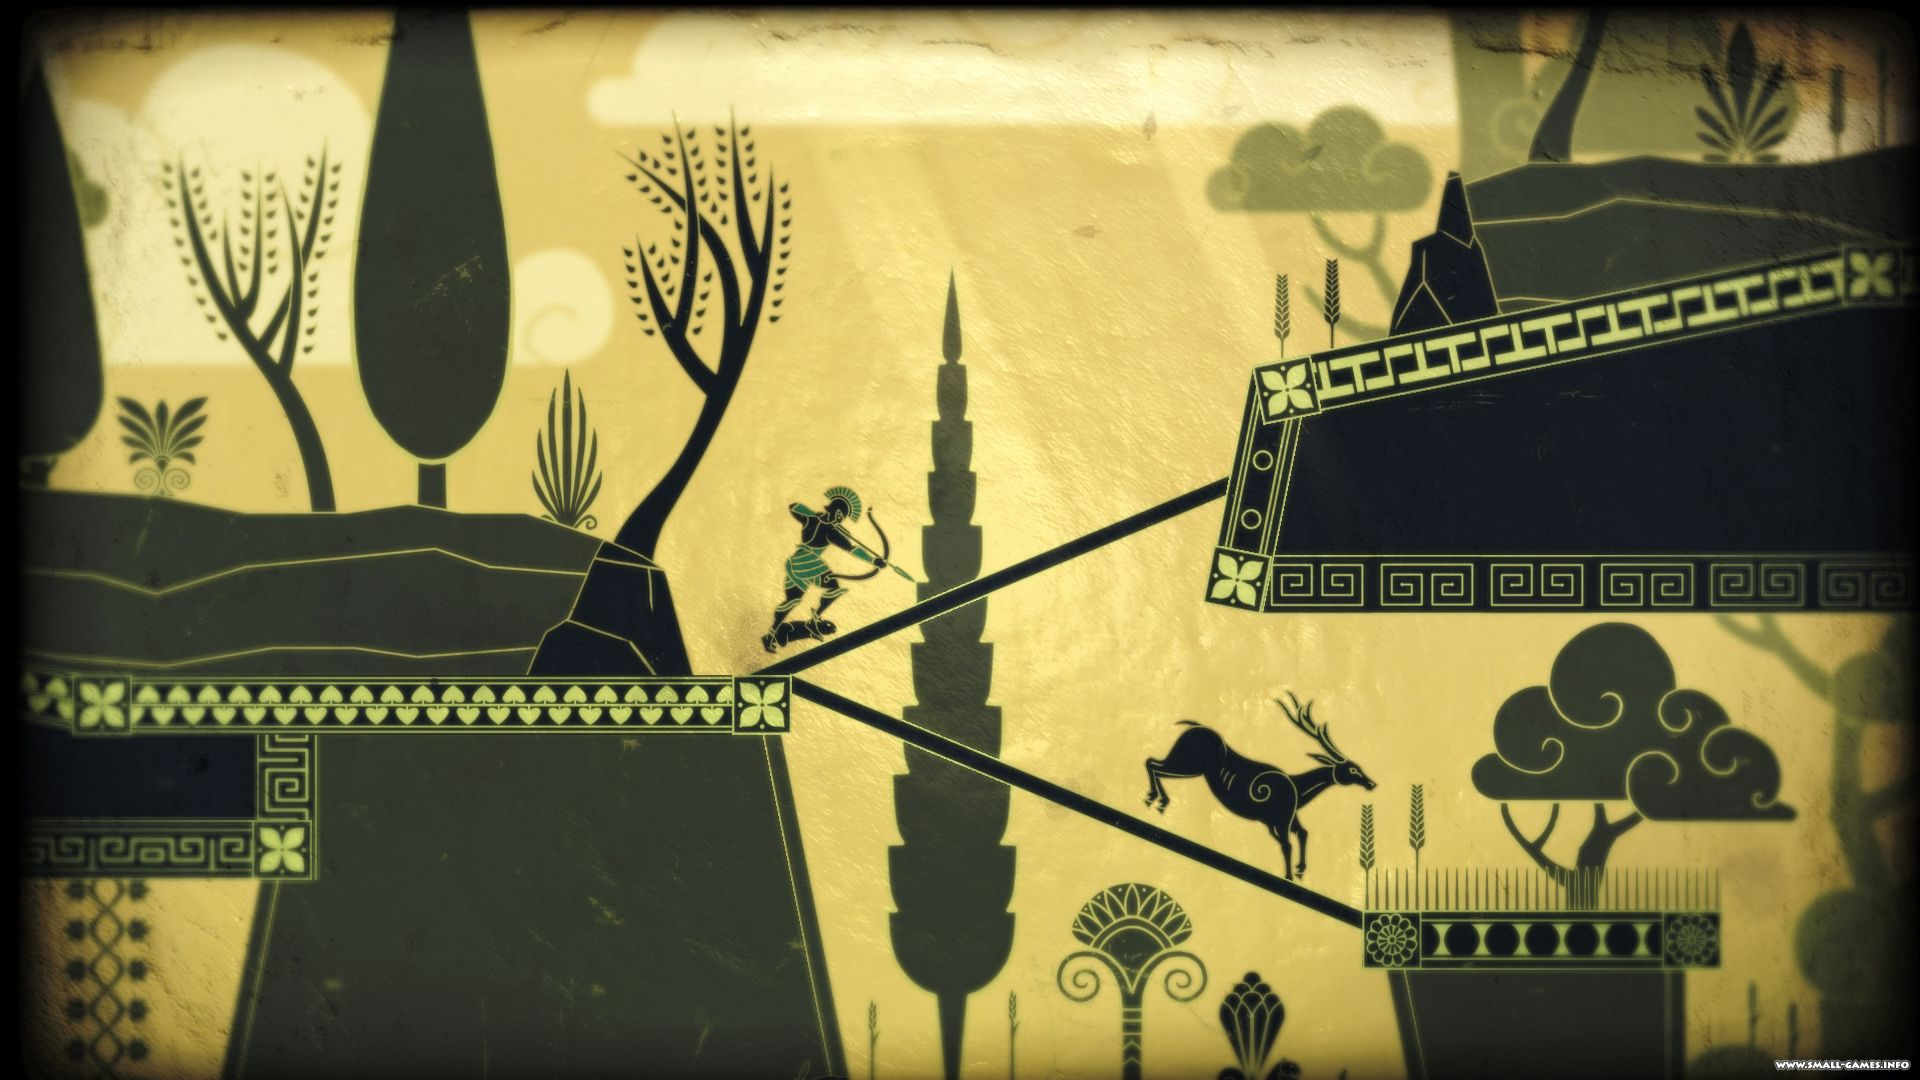 Apotheon arena | download full version | nullgame. Com.